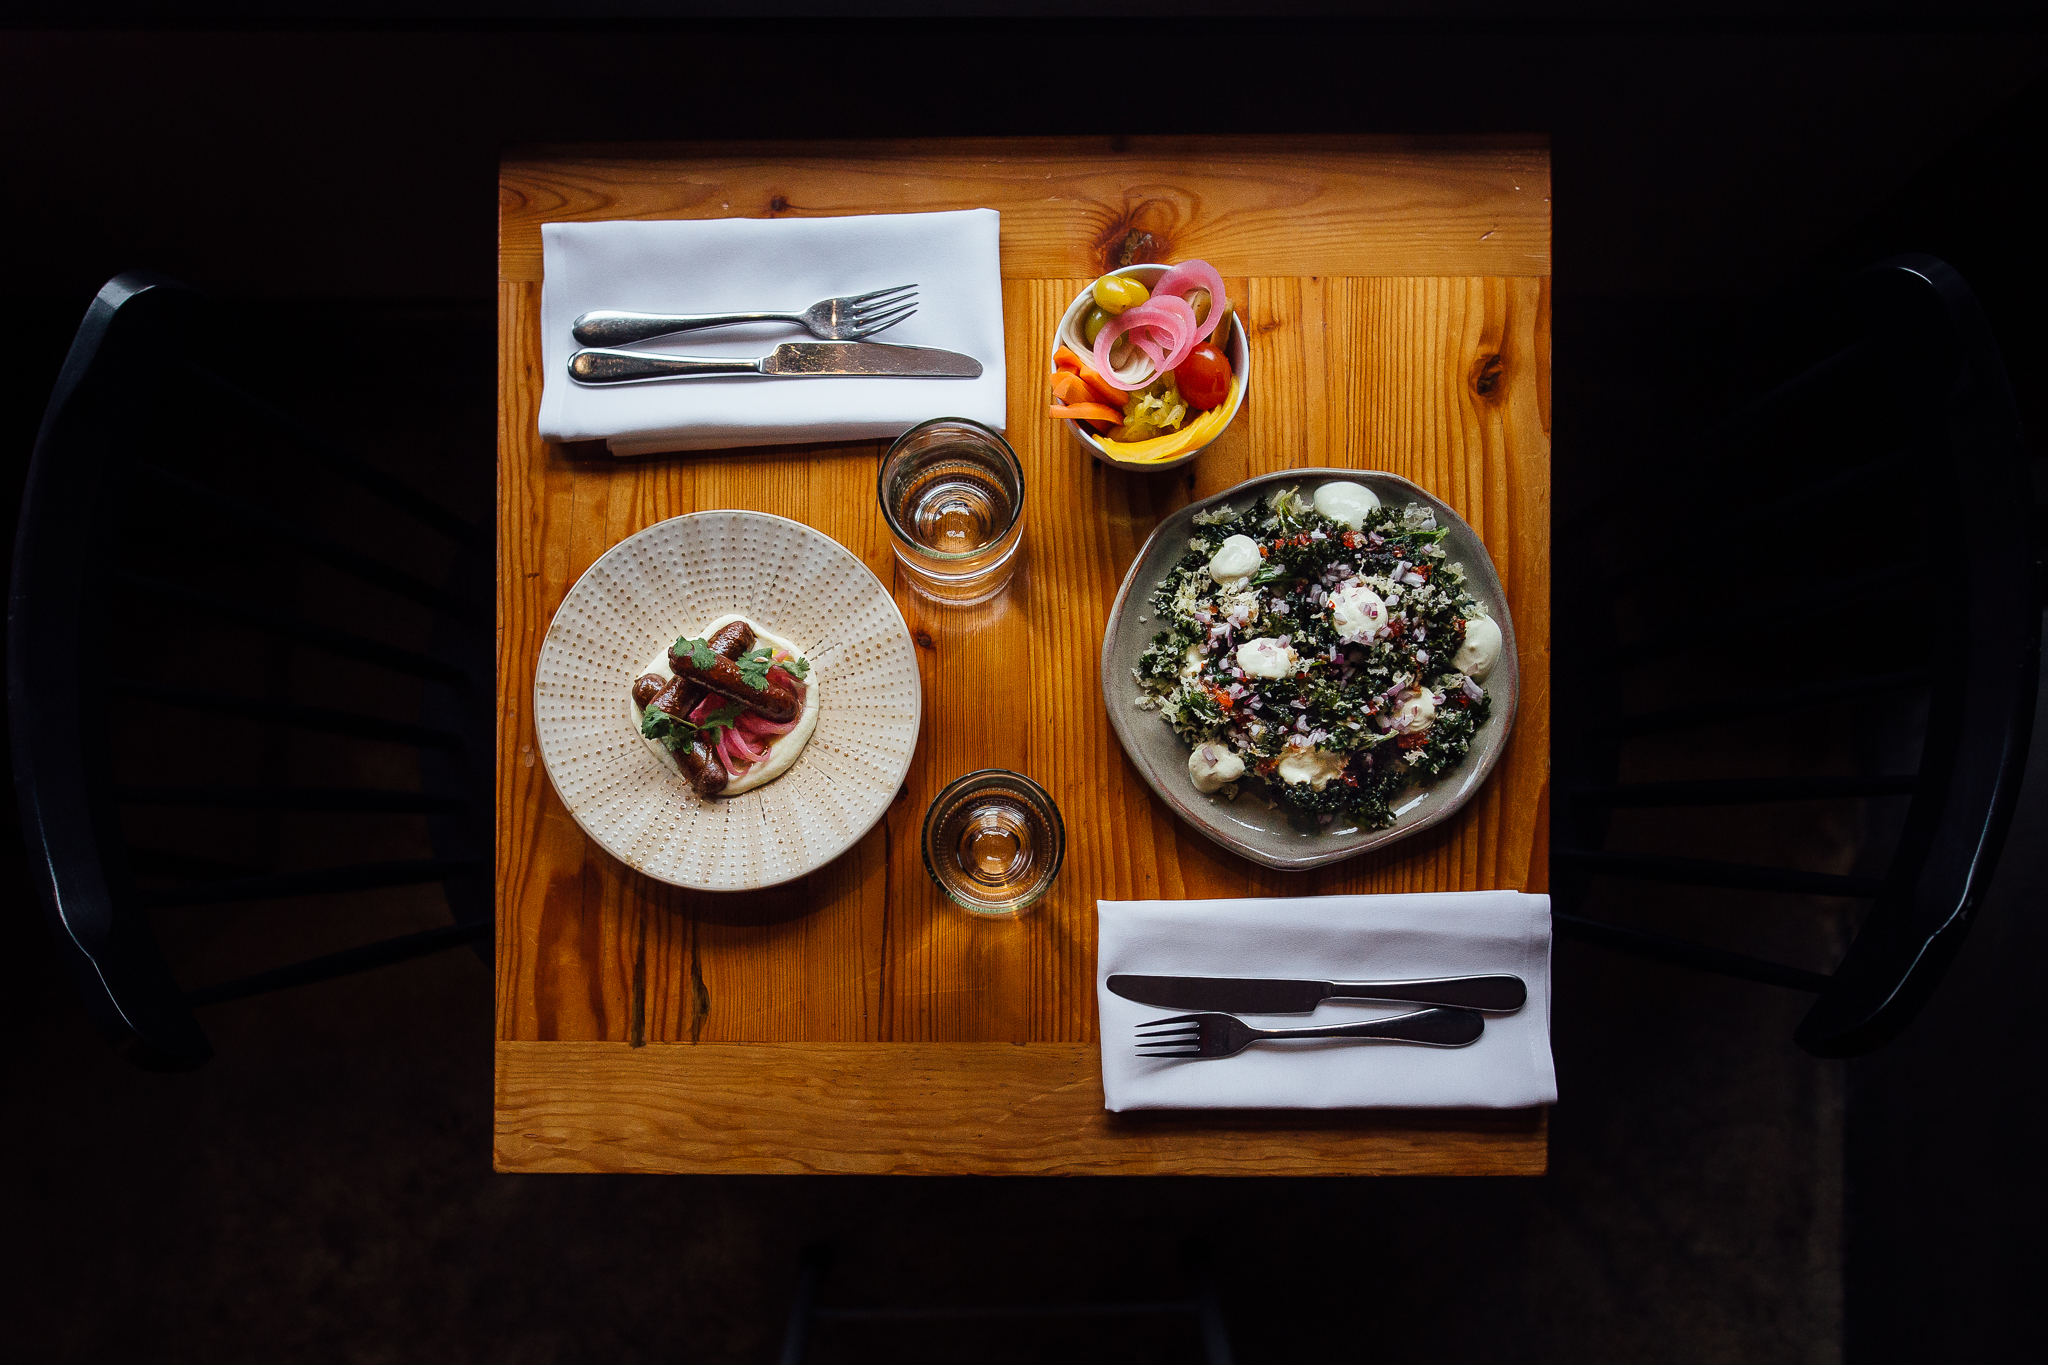 Preserve in Annapolis, Maryland prides itself on pickling local vegetables and integrating them into their menu.